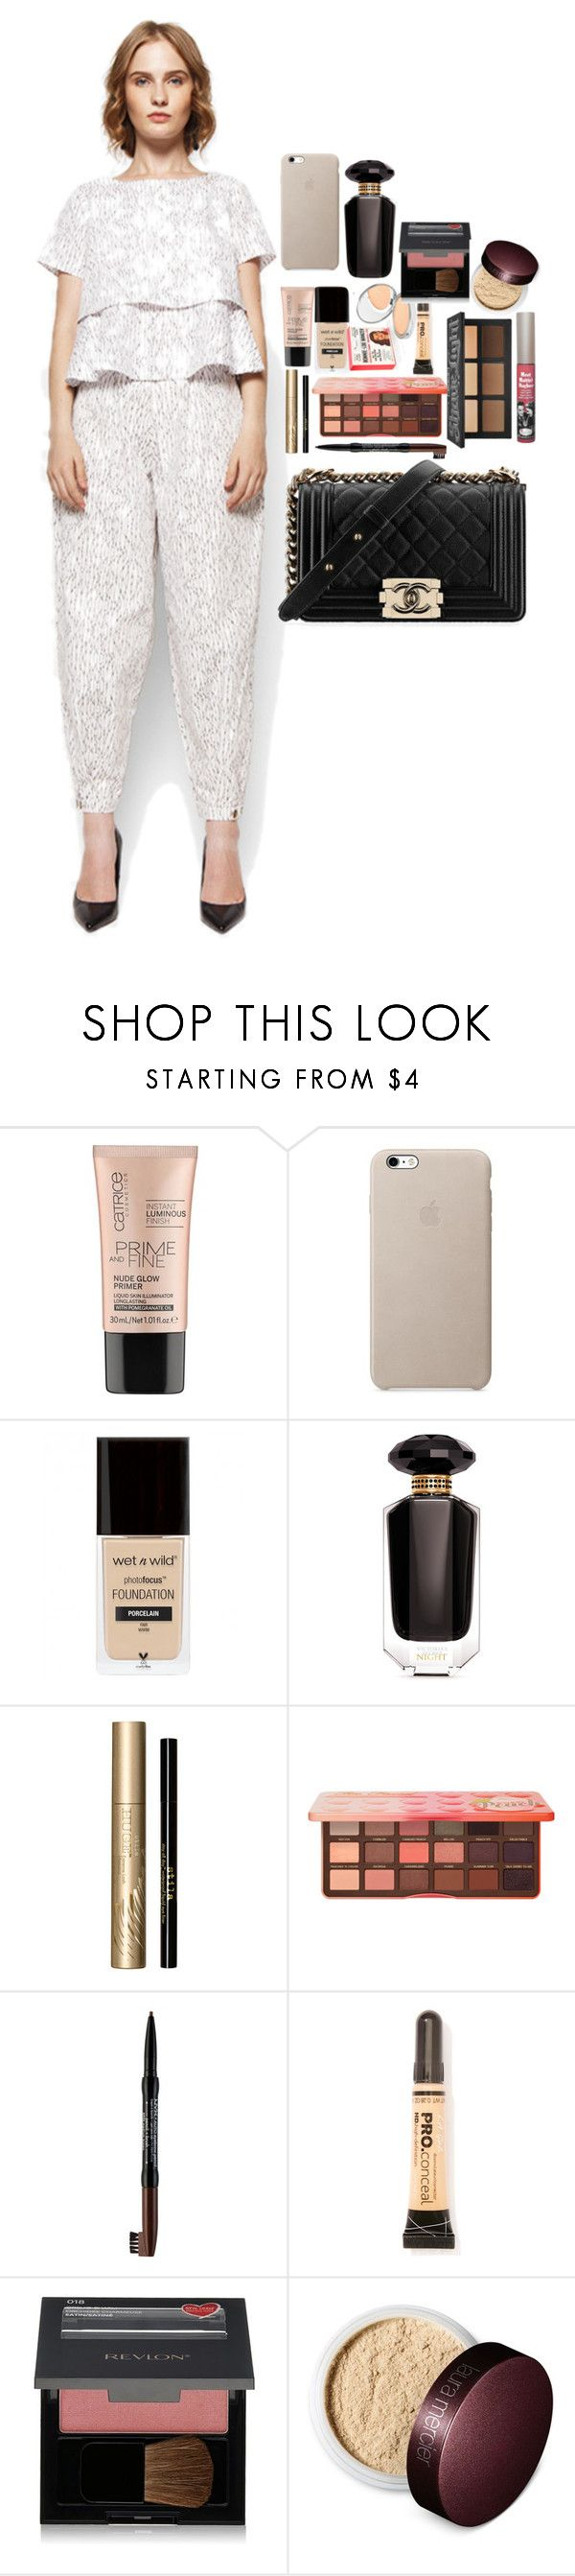 """Untitled #4840"" by veronicaptr ❤ liked on Polyvore featuring Victoria's Secret, Stila, Too Faced Cosmetics, NYX, L.A. Girl, Revlon, Laura Mercier and Chanel"